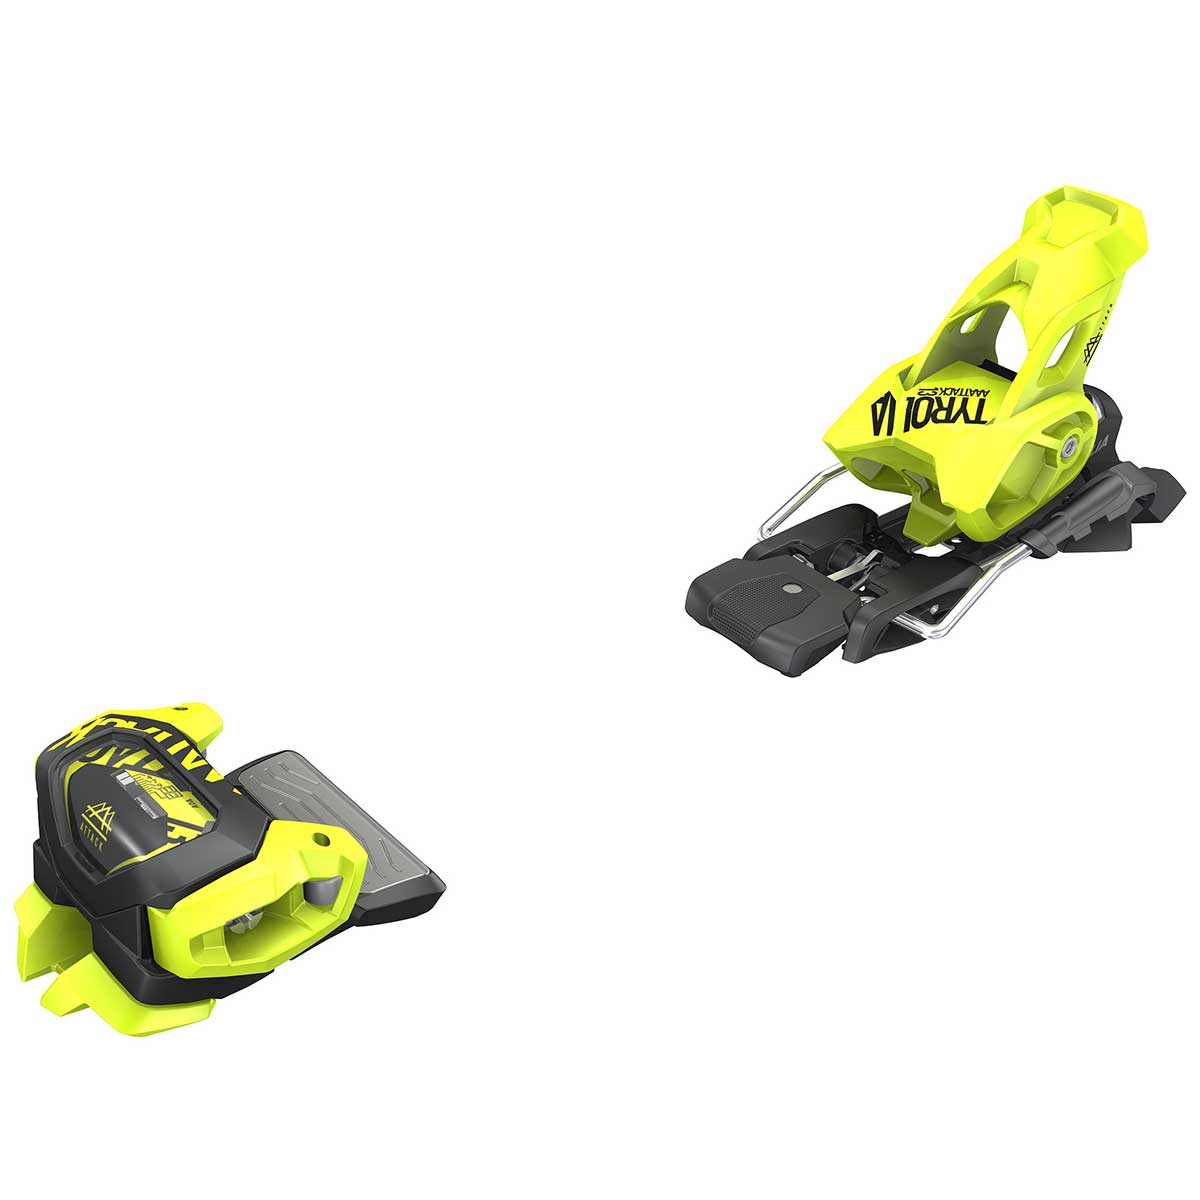 Tyrolia Attack2 13 GW ski binding in flash yellow